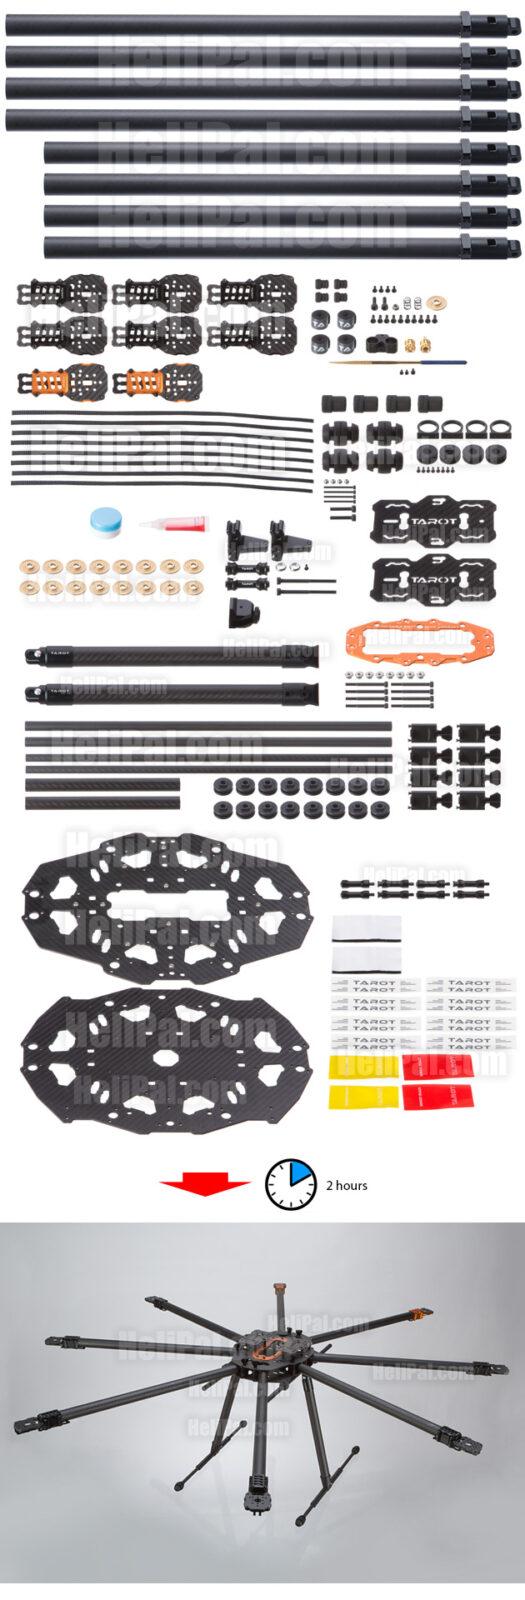 Tarot T18 Octocopter Kit